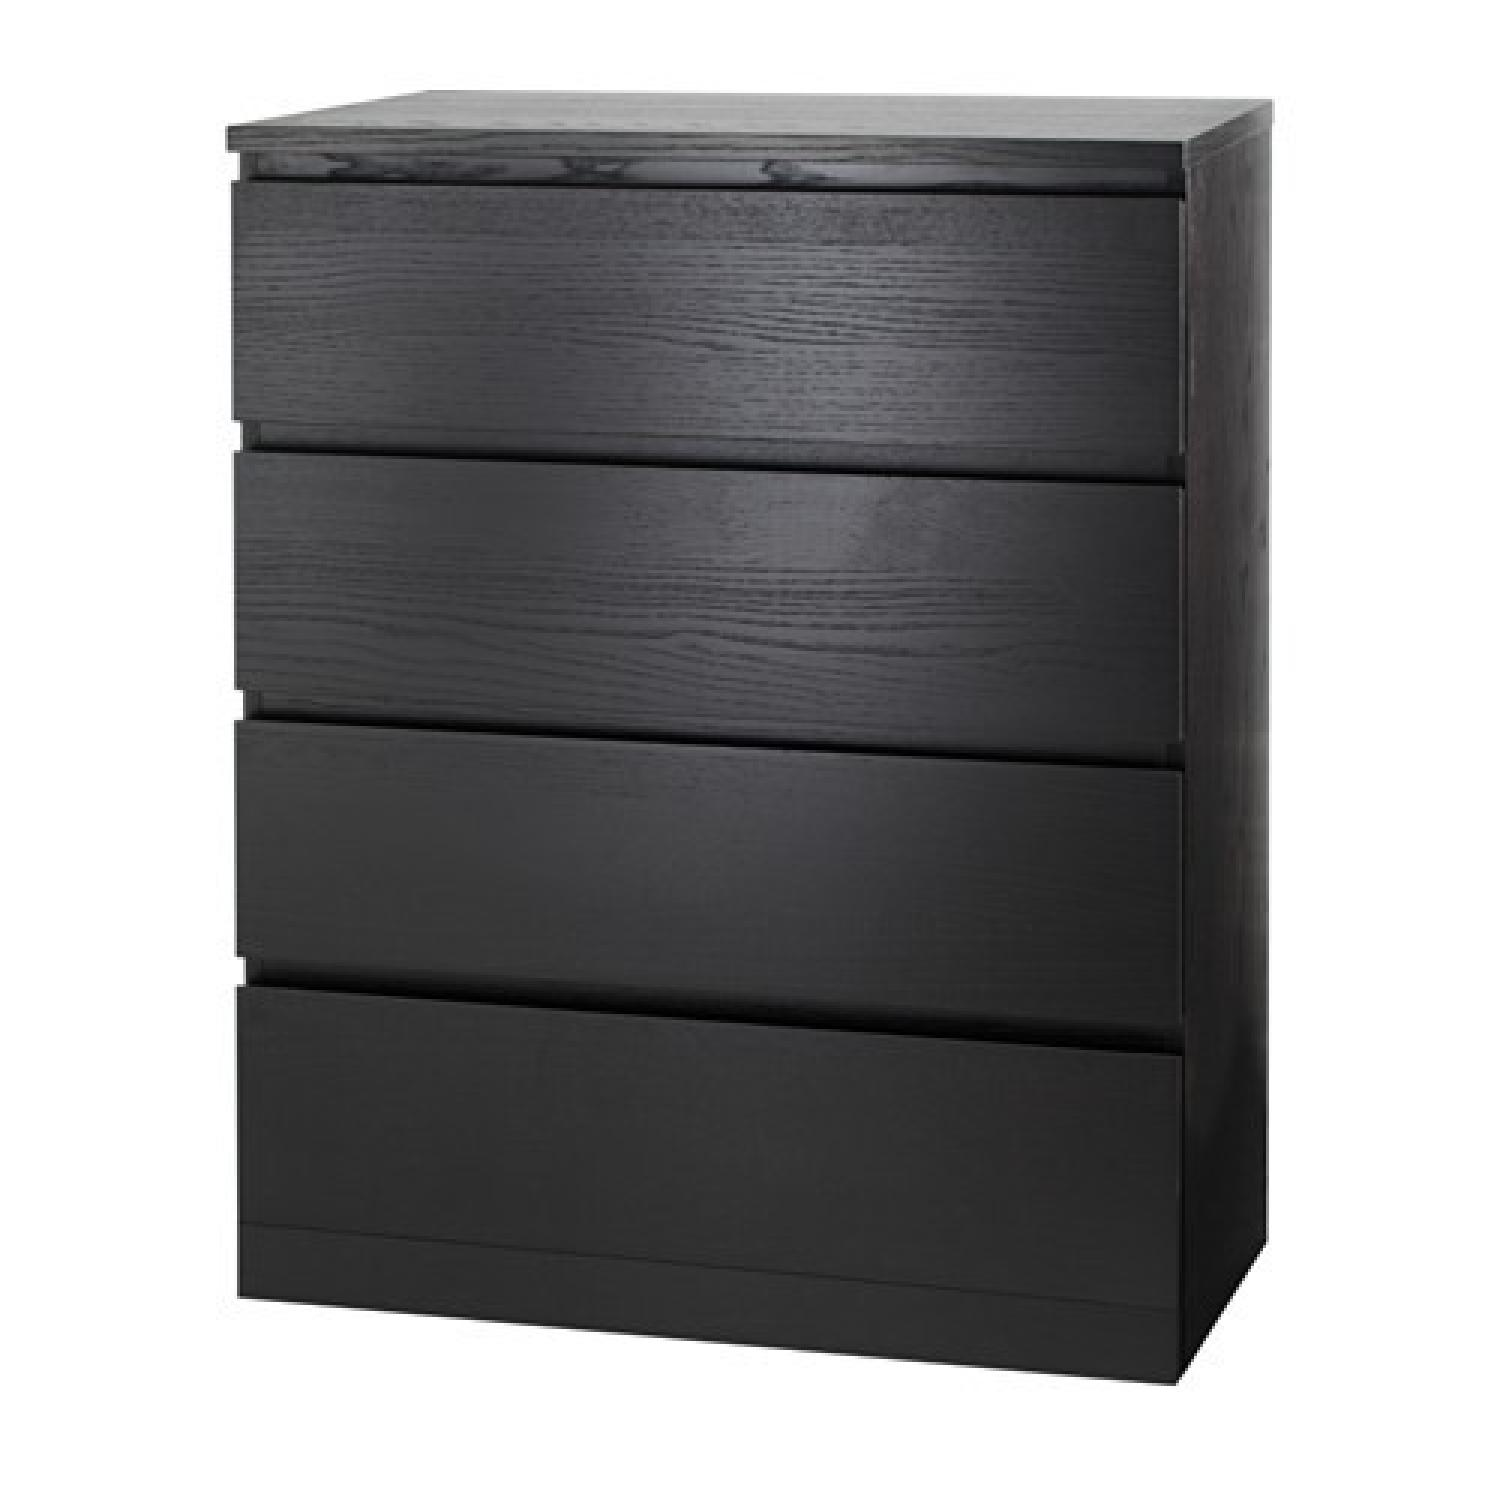 be inspiration files drawer drawers and malm a birch image veneer styles ikea chest of better closet for appealing